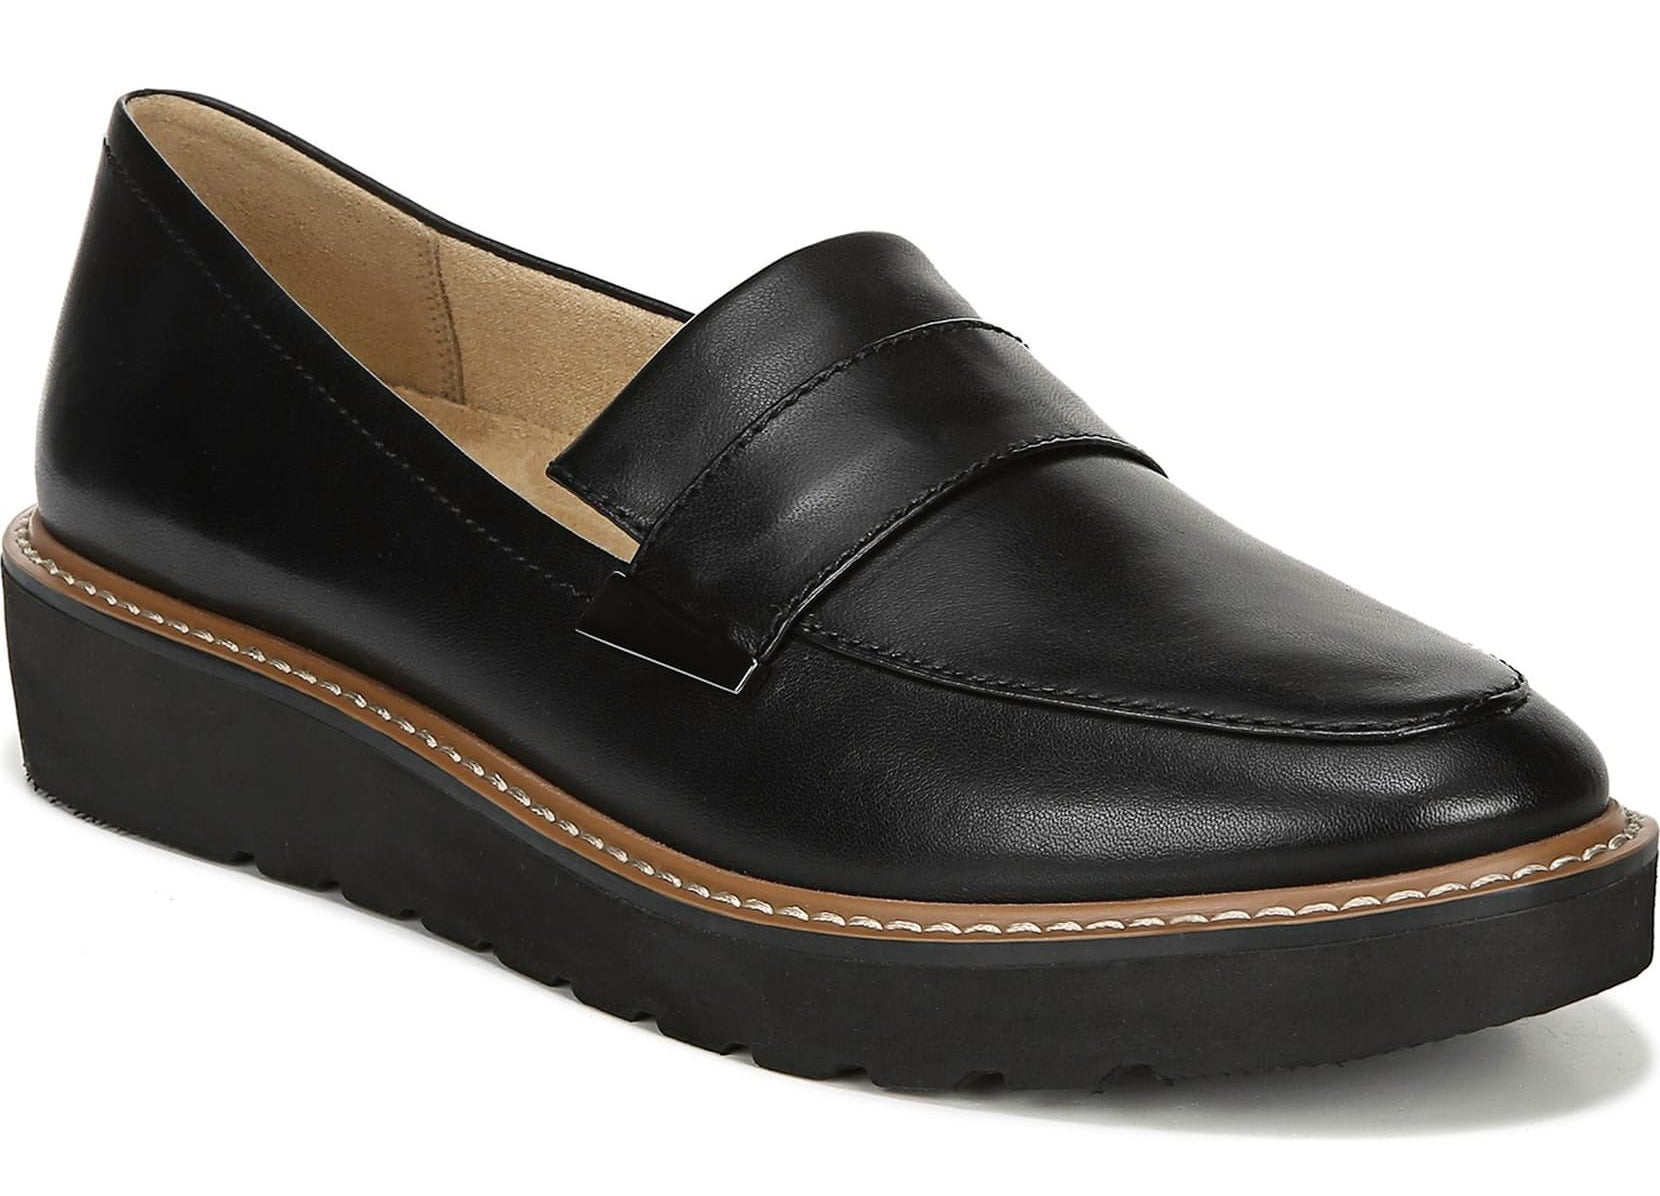 The loafers in black